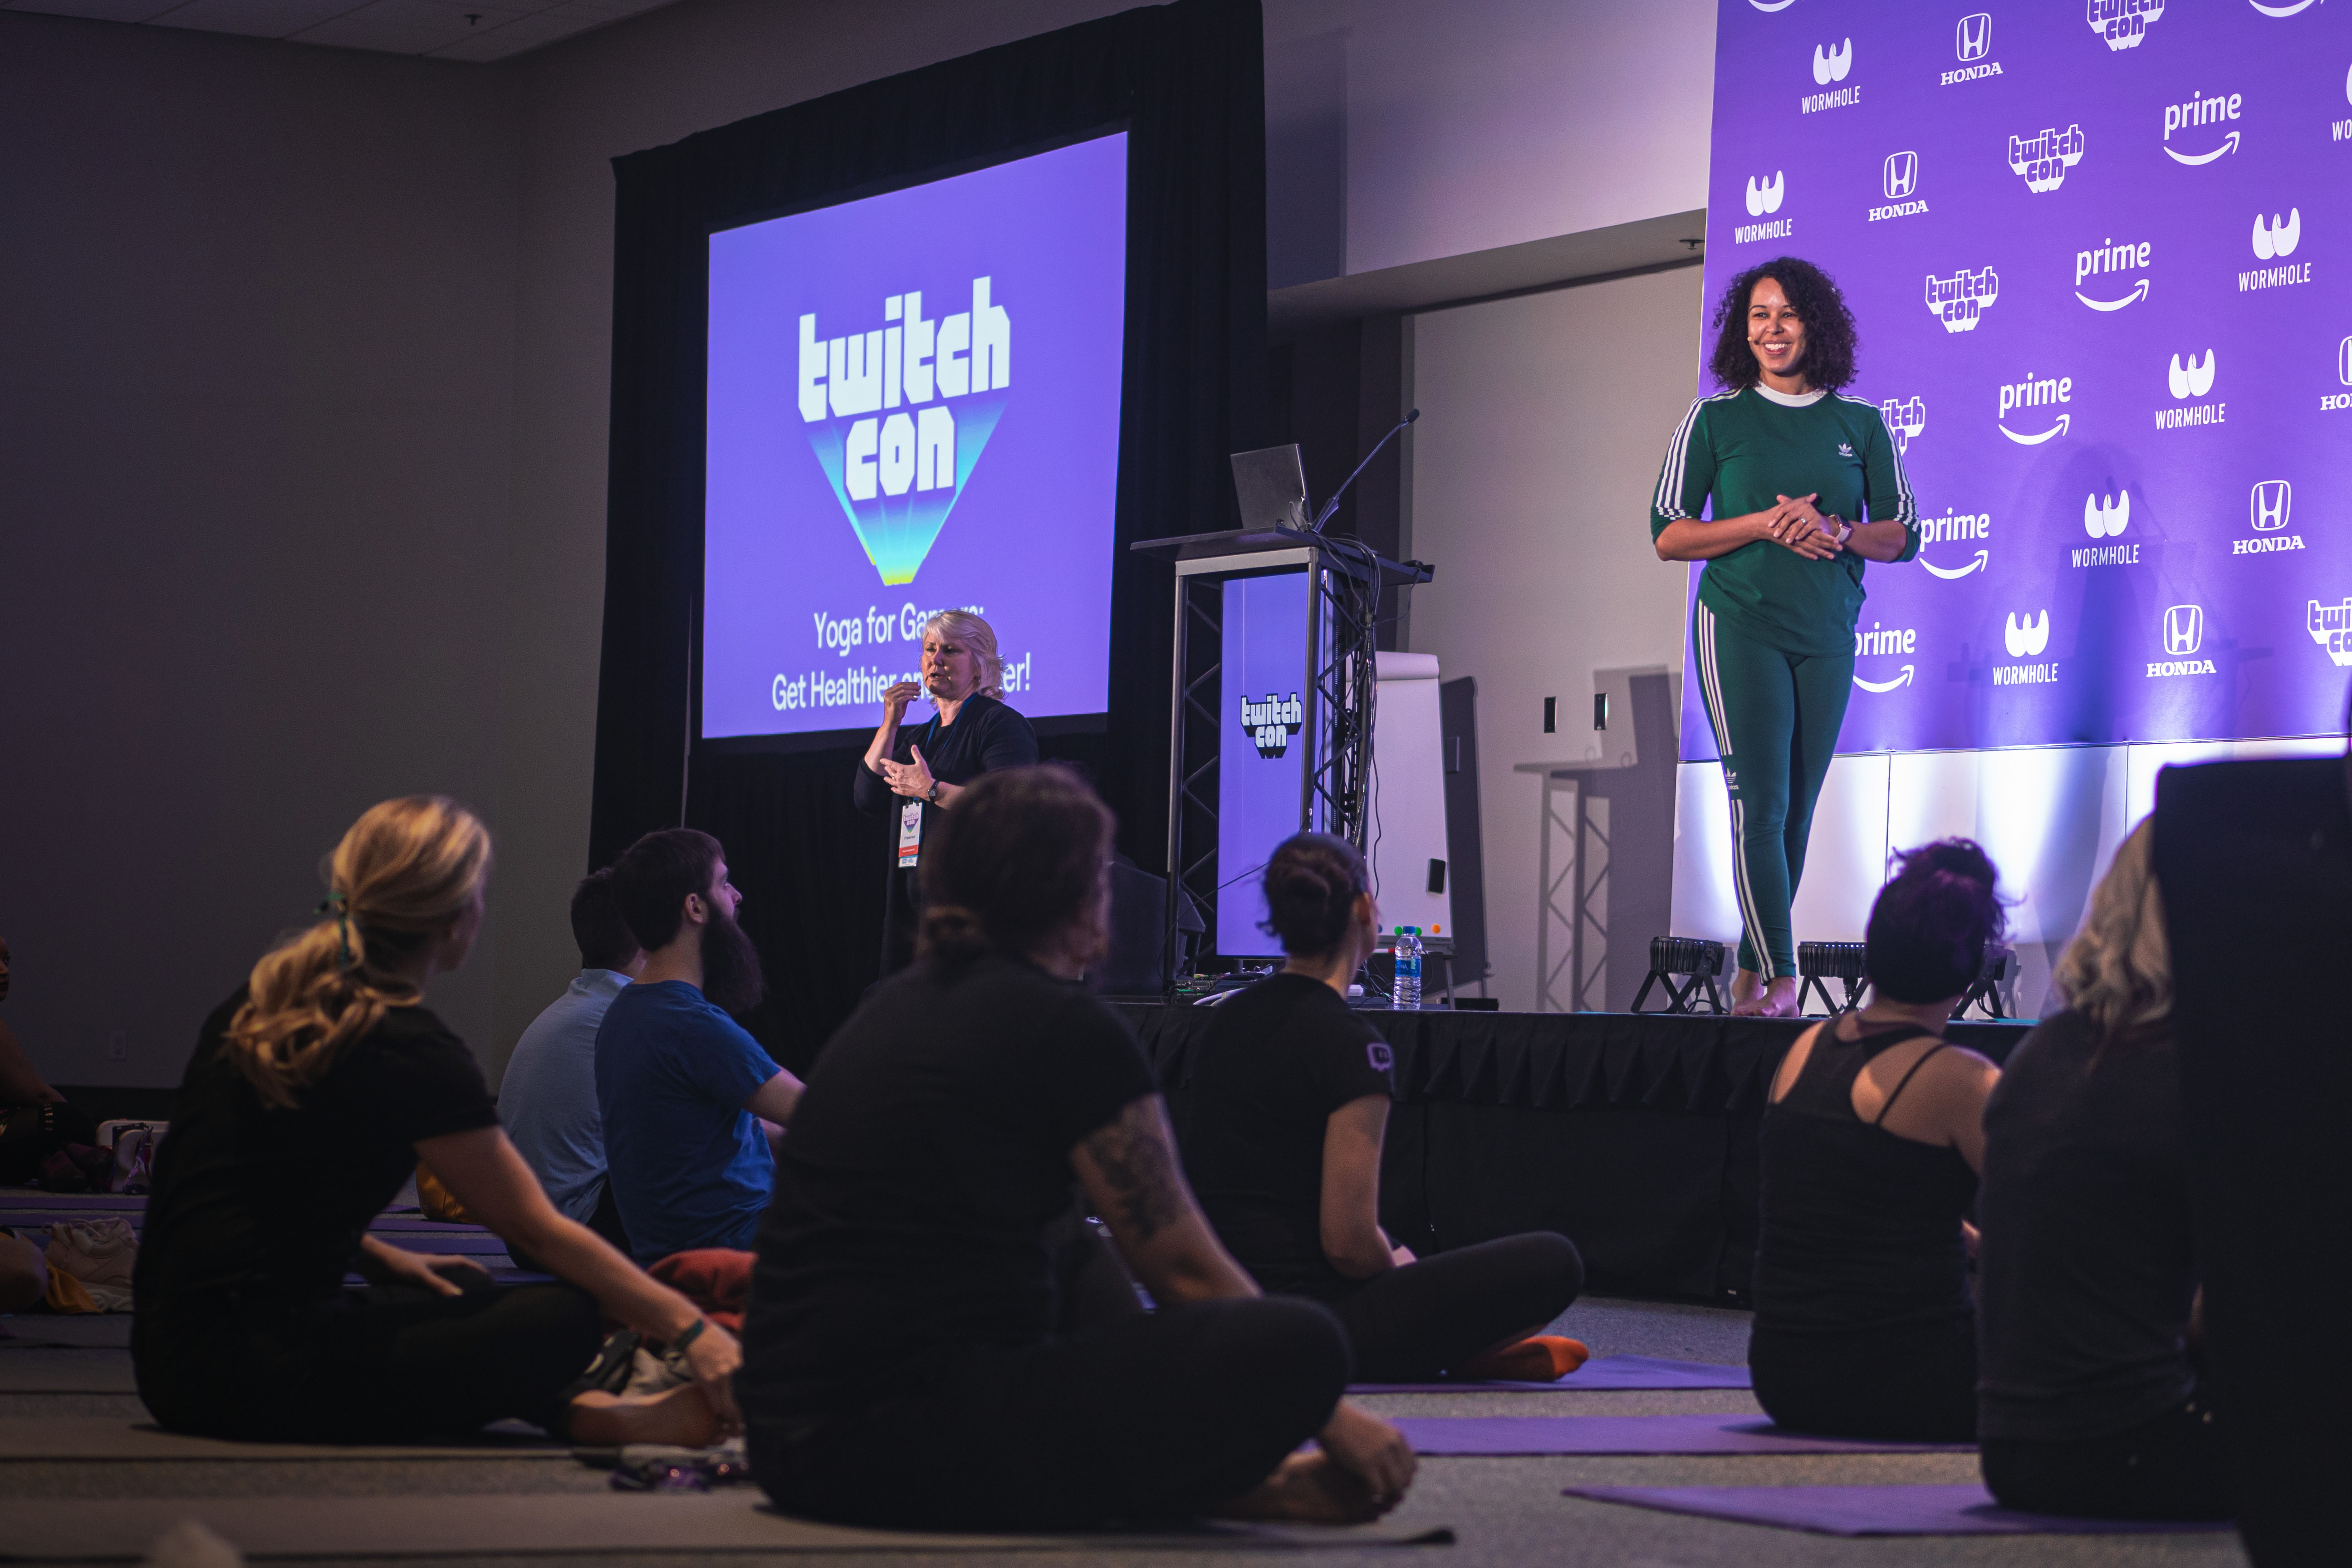 Amber leading the Yoga For Gamers panel at TwitchCon